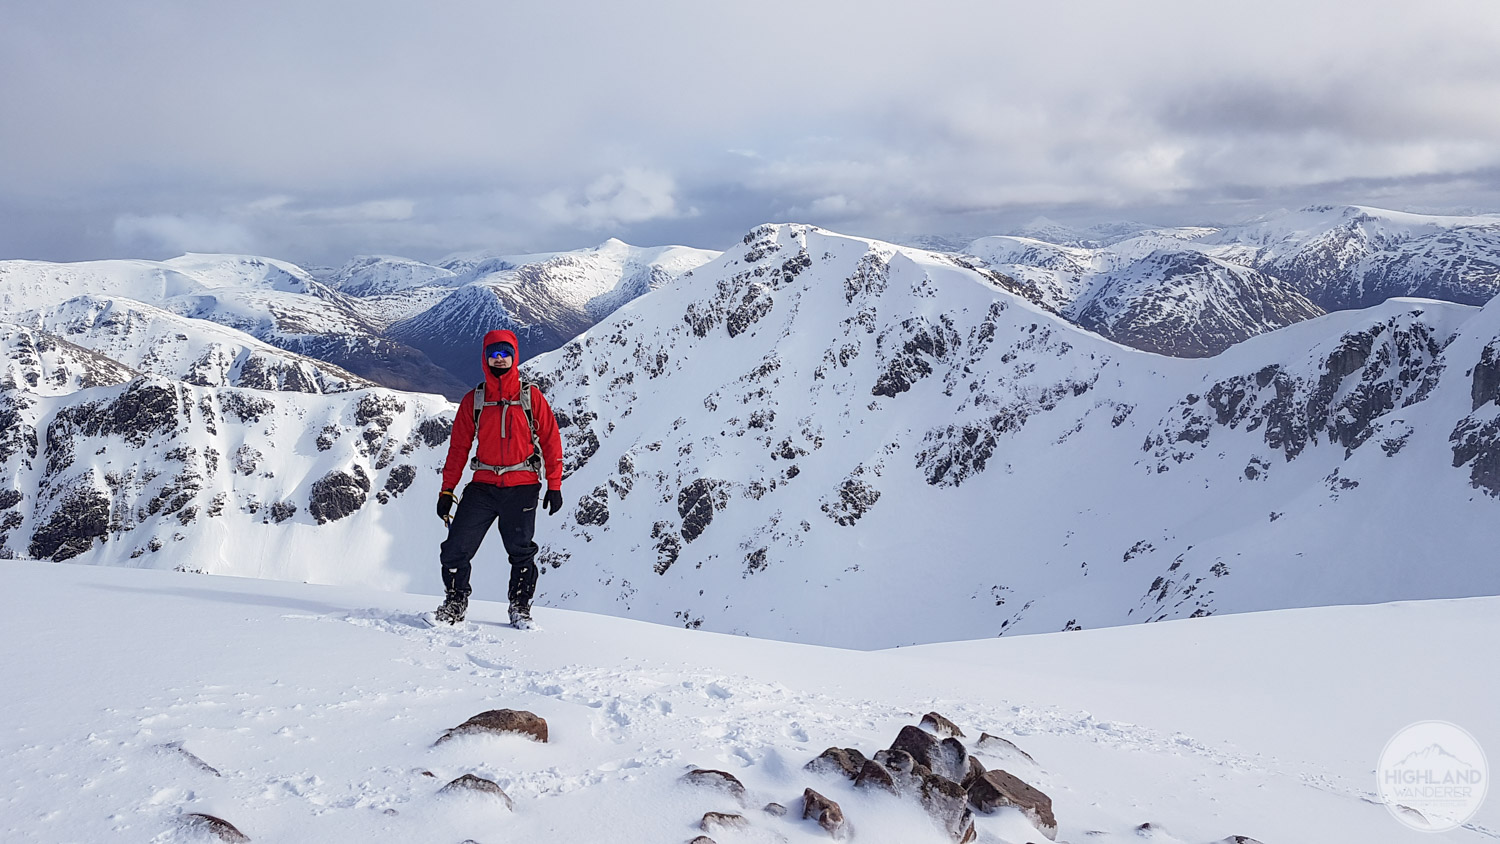 Standing on the summit with the elusive Stob Coire Sgreamhach behind me.